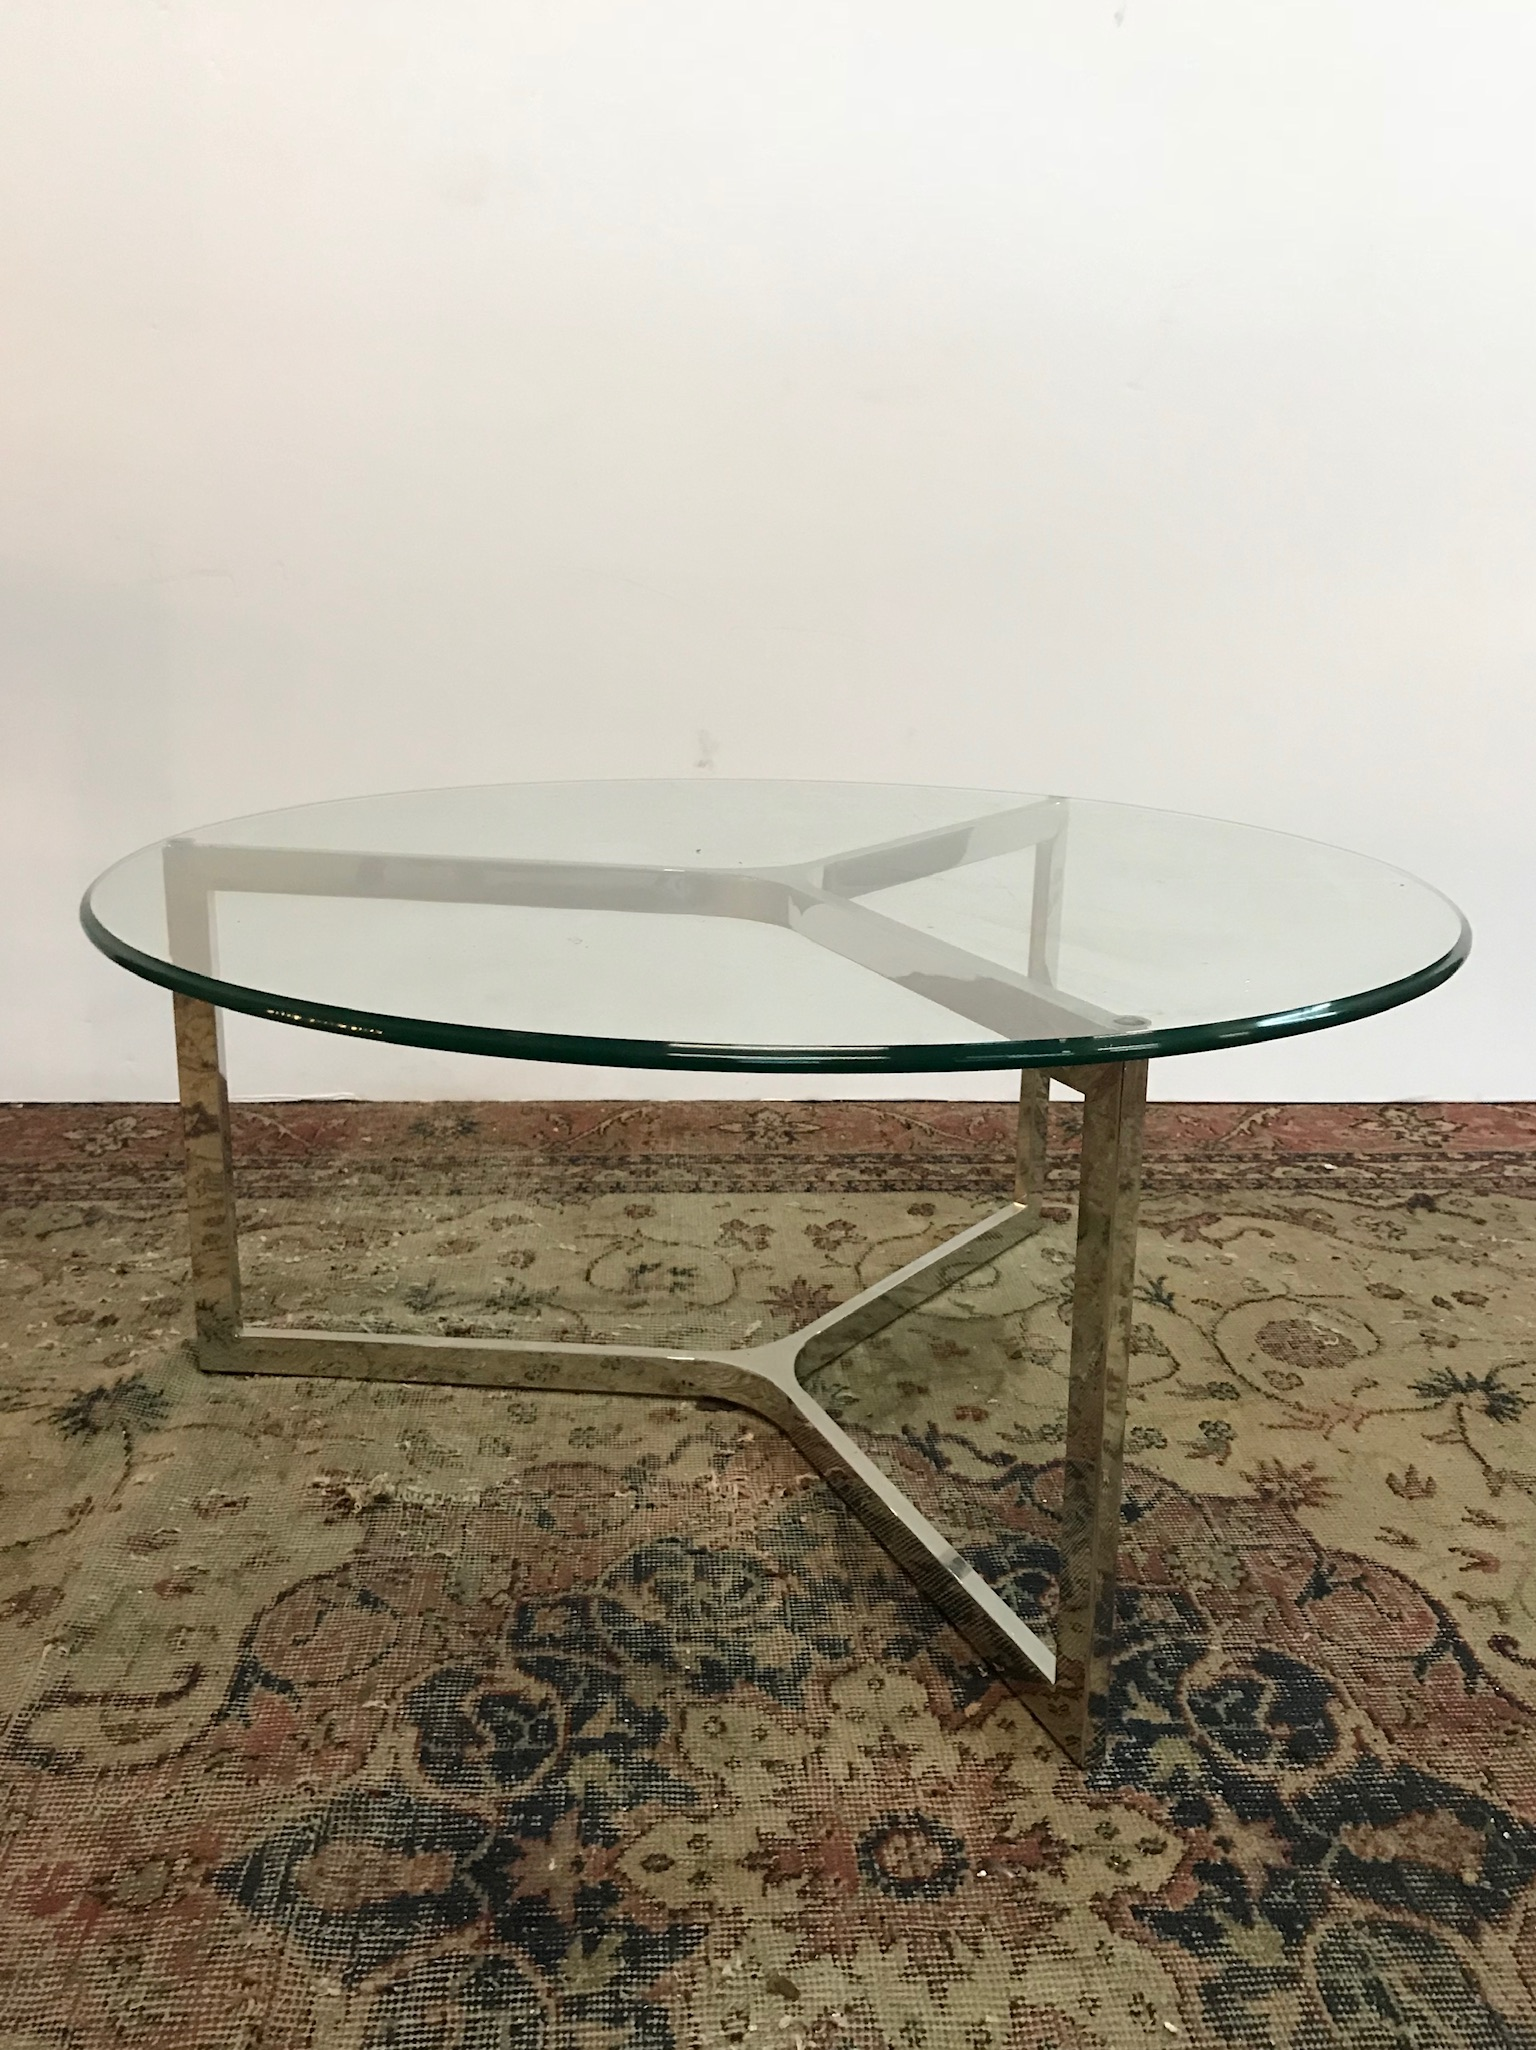 Round Glass Coffee Table $200